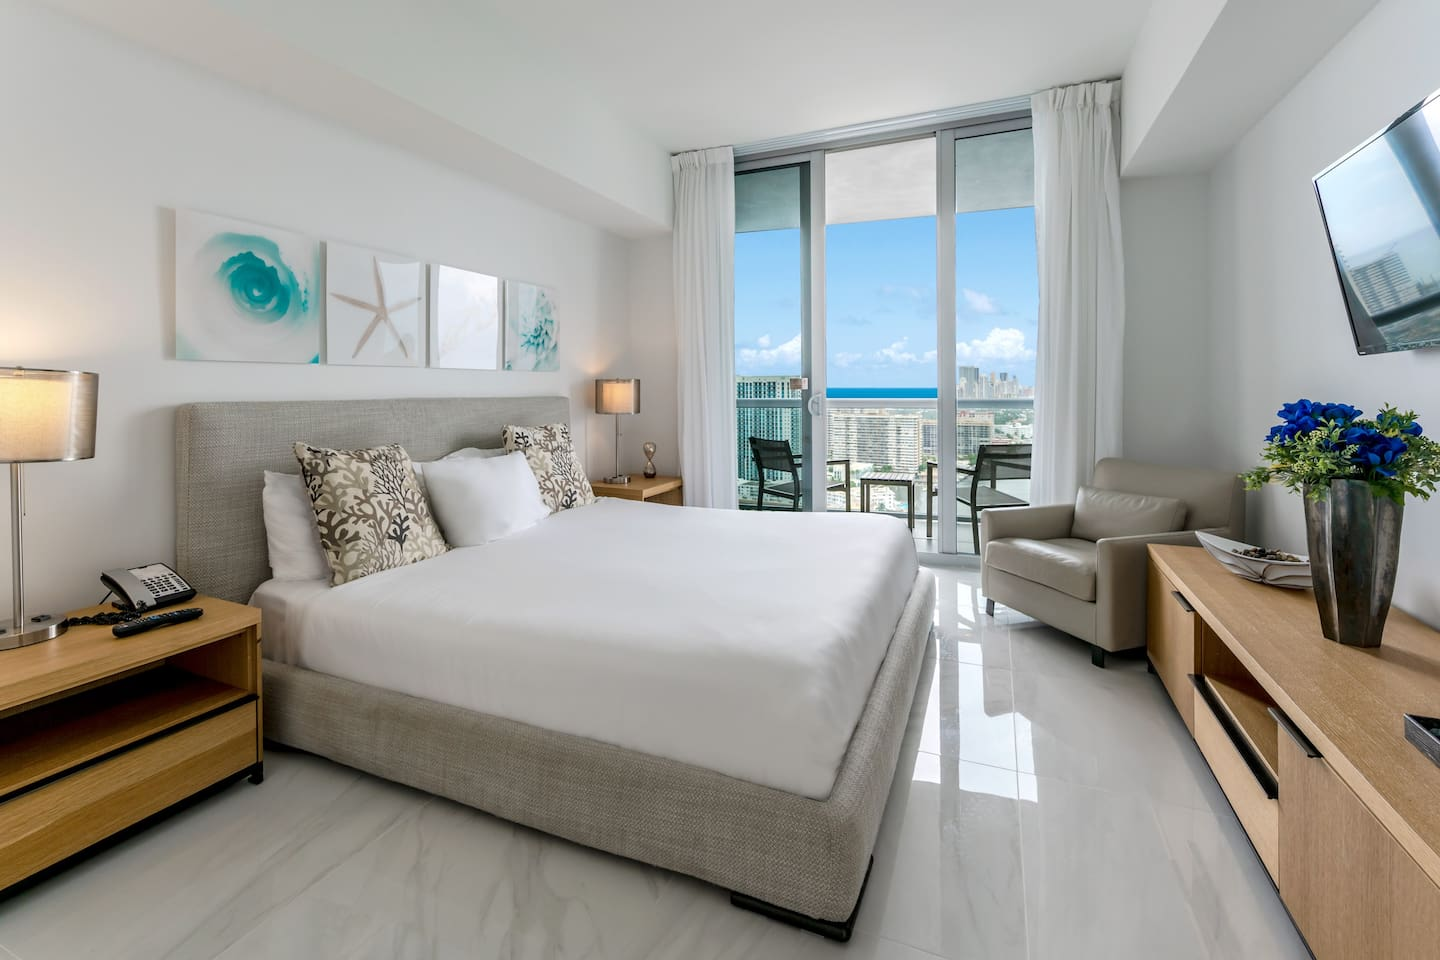 Luxurious One Bedroom Apartment with King size bed and marble floors. Master Bedroom includes LED TV, marble floor balcony and walk-in closet.